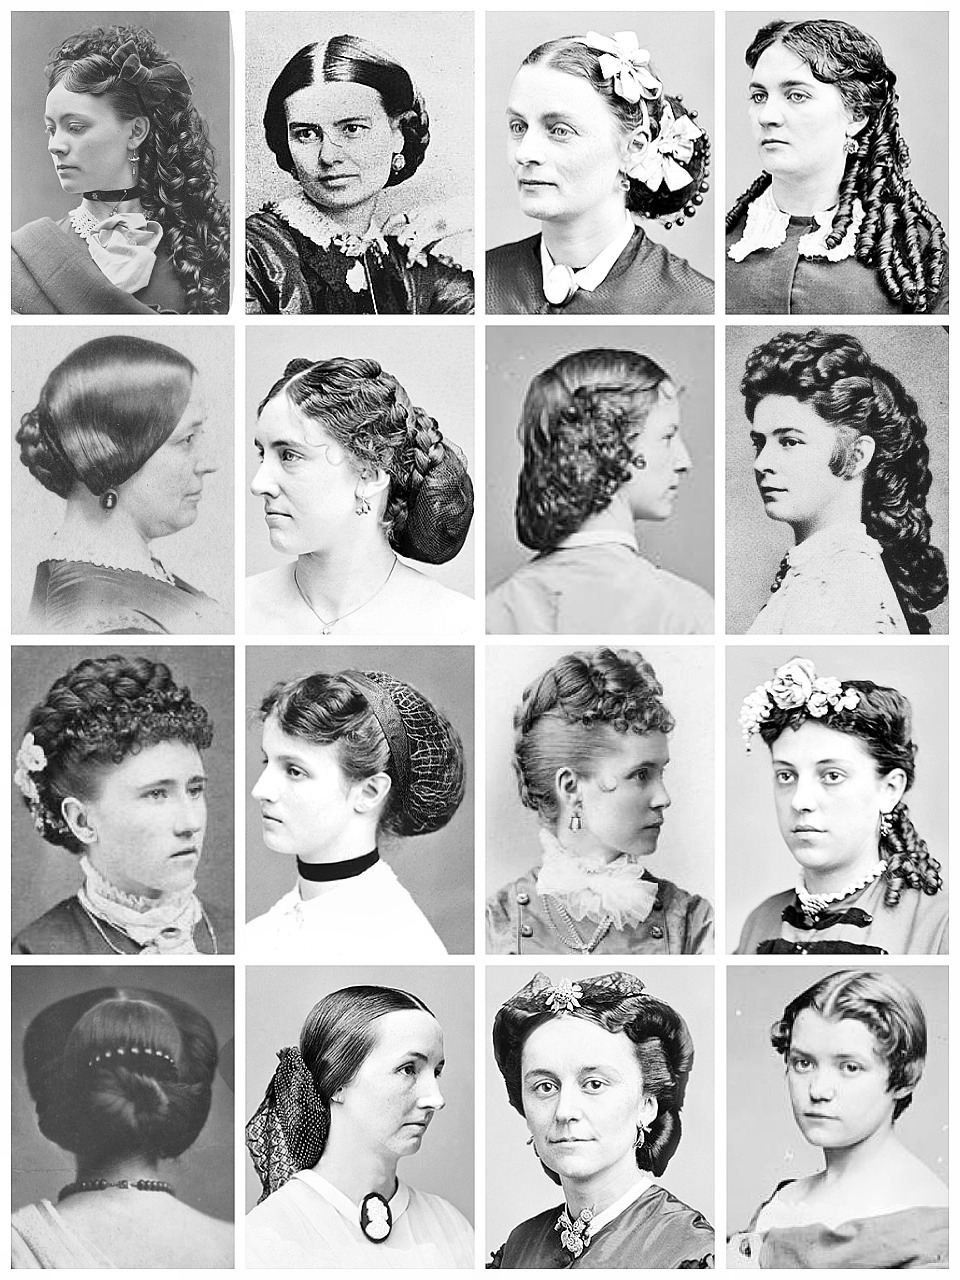 best men hair style vintage portraits depict s hairstyles from the 1880 | victorian hairstyles